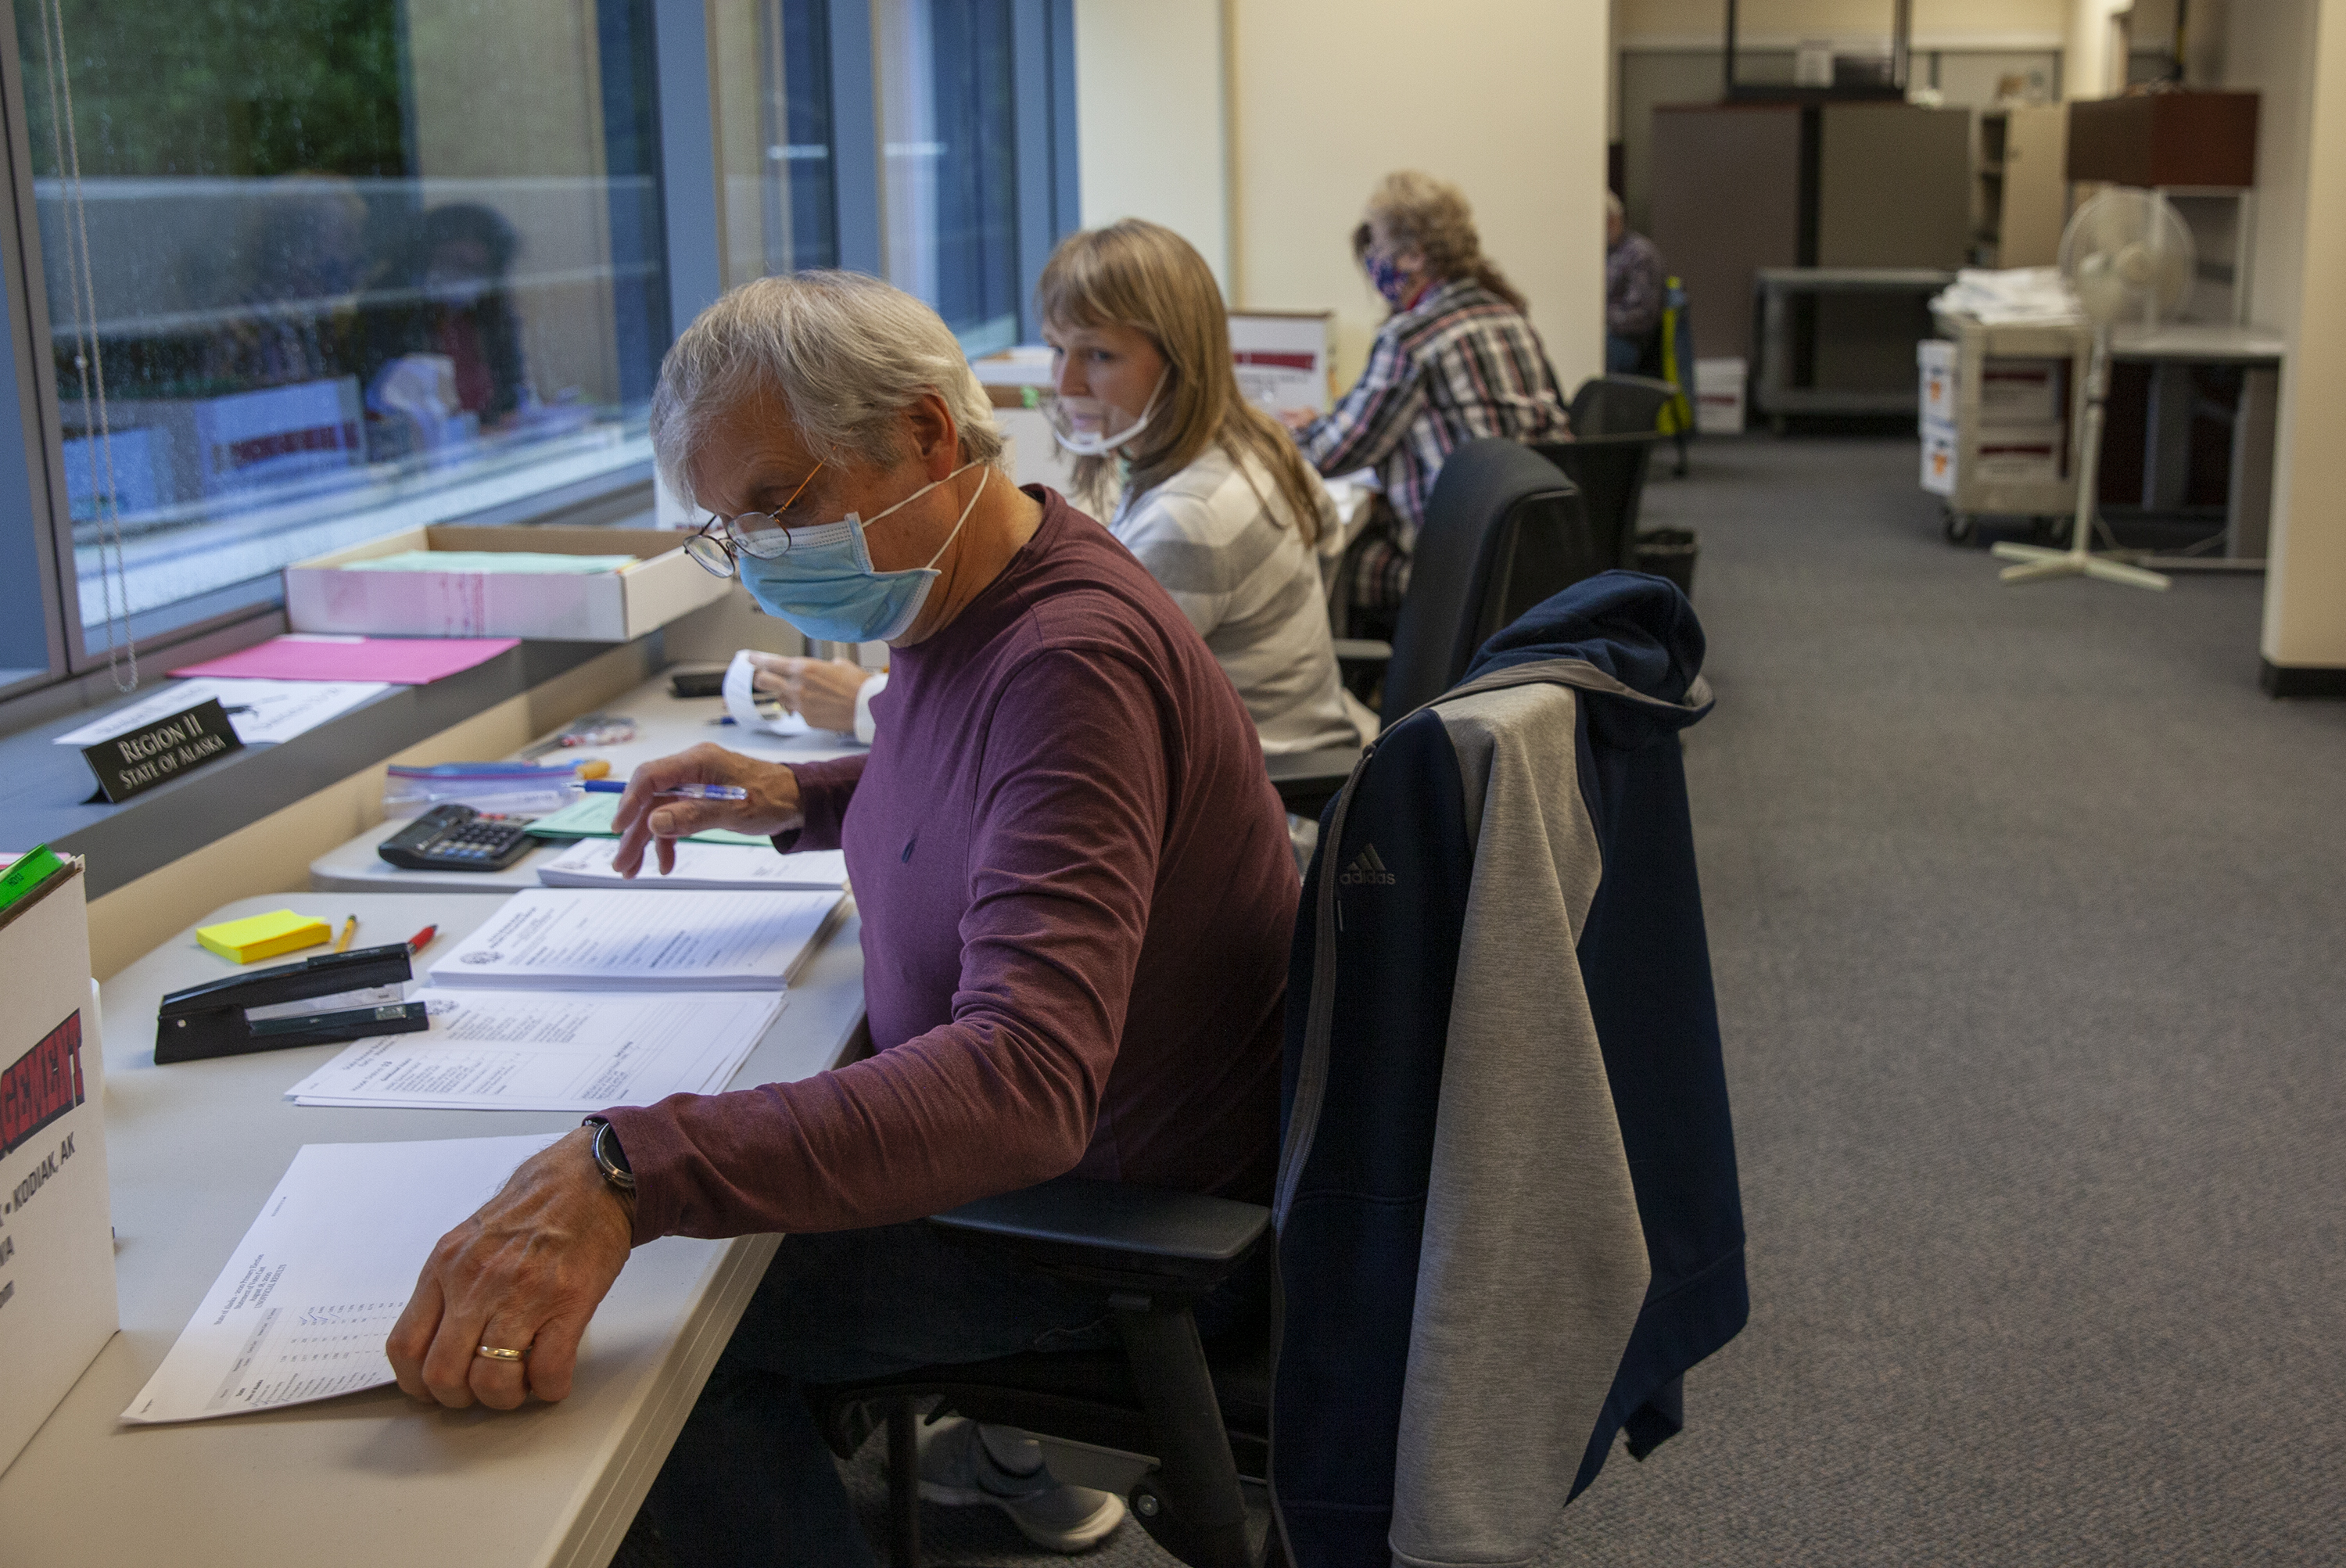 People at the Alaska Division of Elections double-check voter information on August 25, 2020 in Juneau, Alaska. (Photo by Rashah McChesney/KTOO)